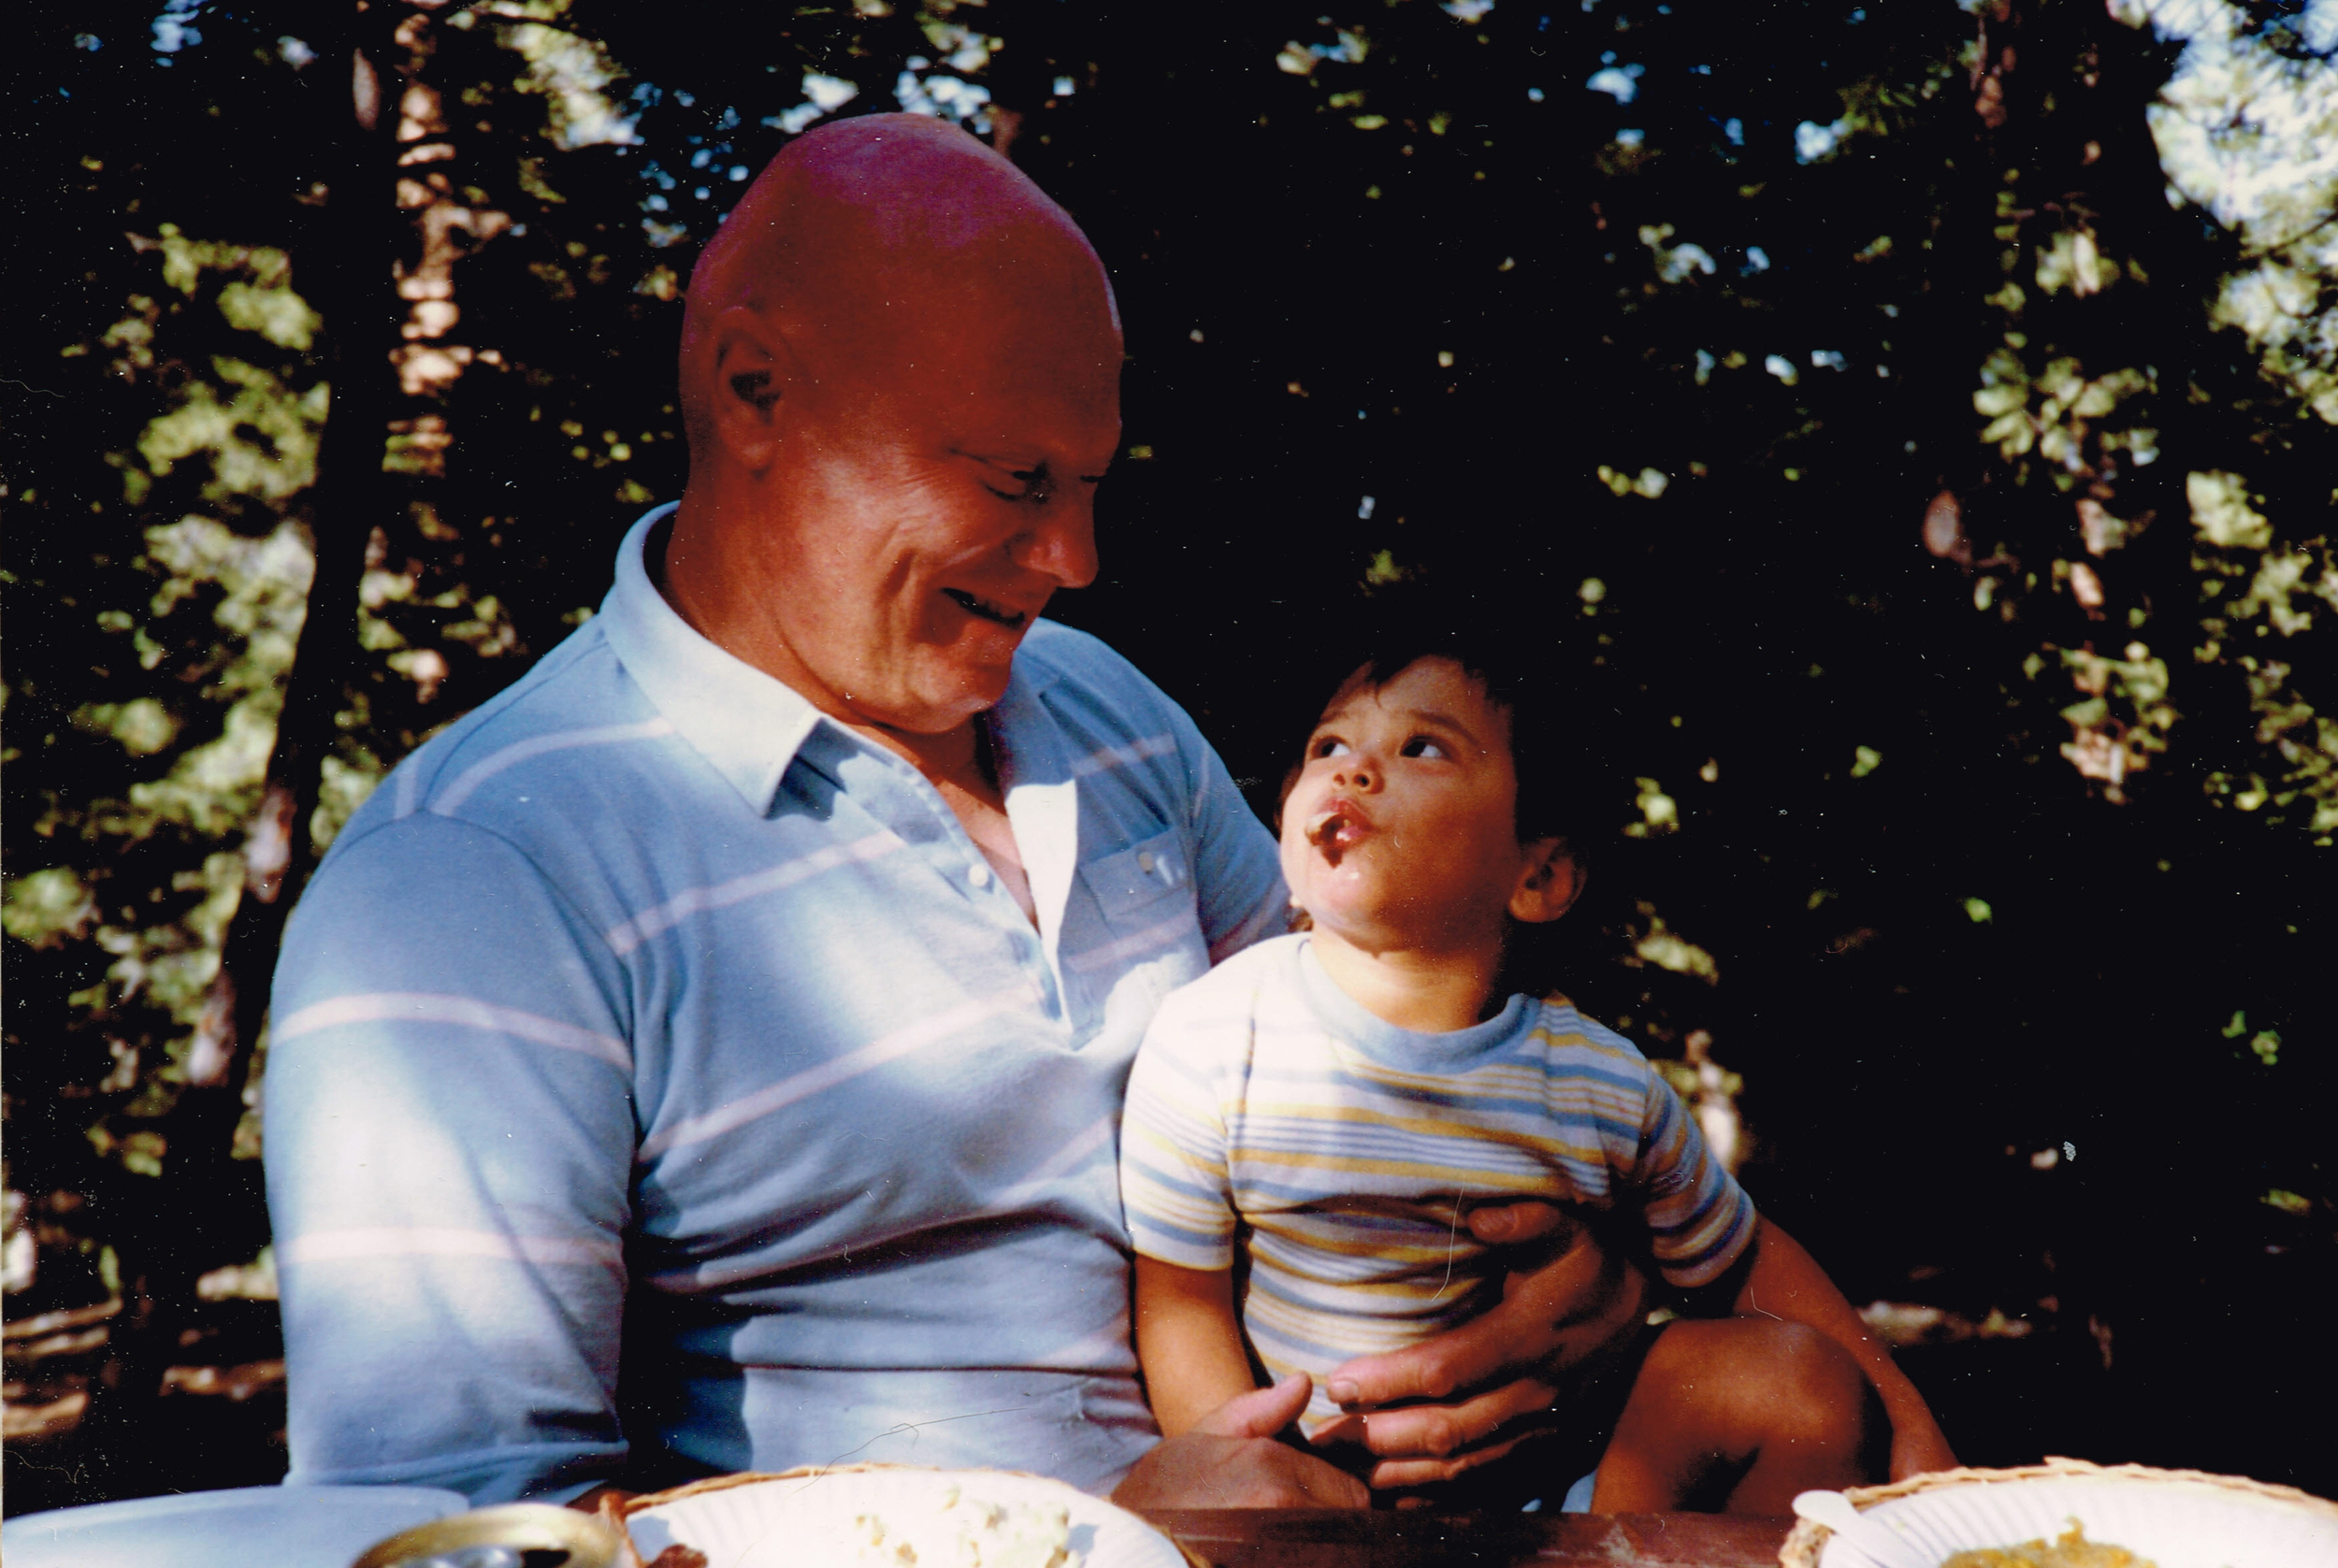 Christian learning to become a steward of the land from his Father Siegfried in 1989